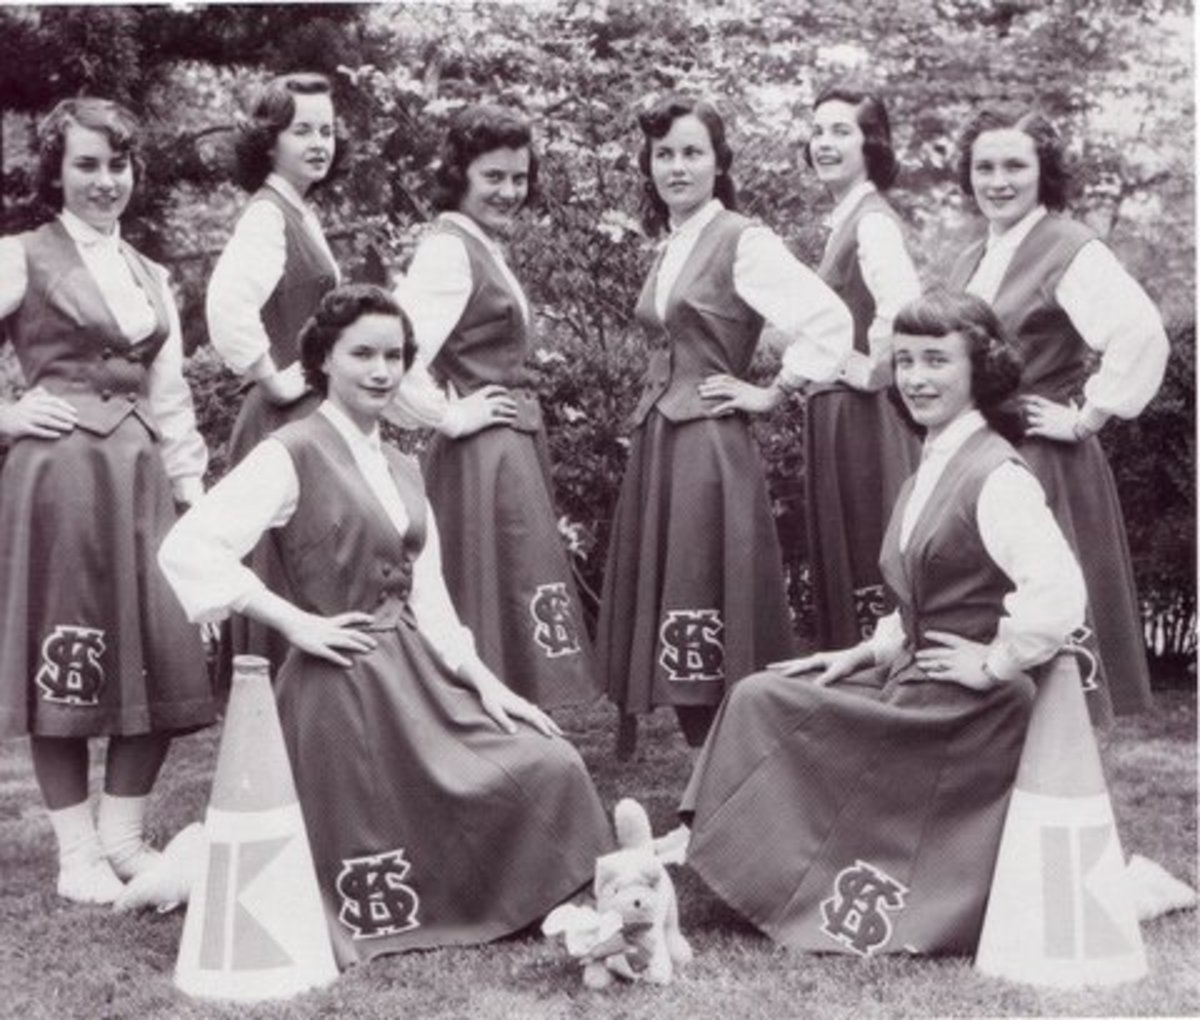 High School Cheerleaders of 1955